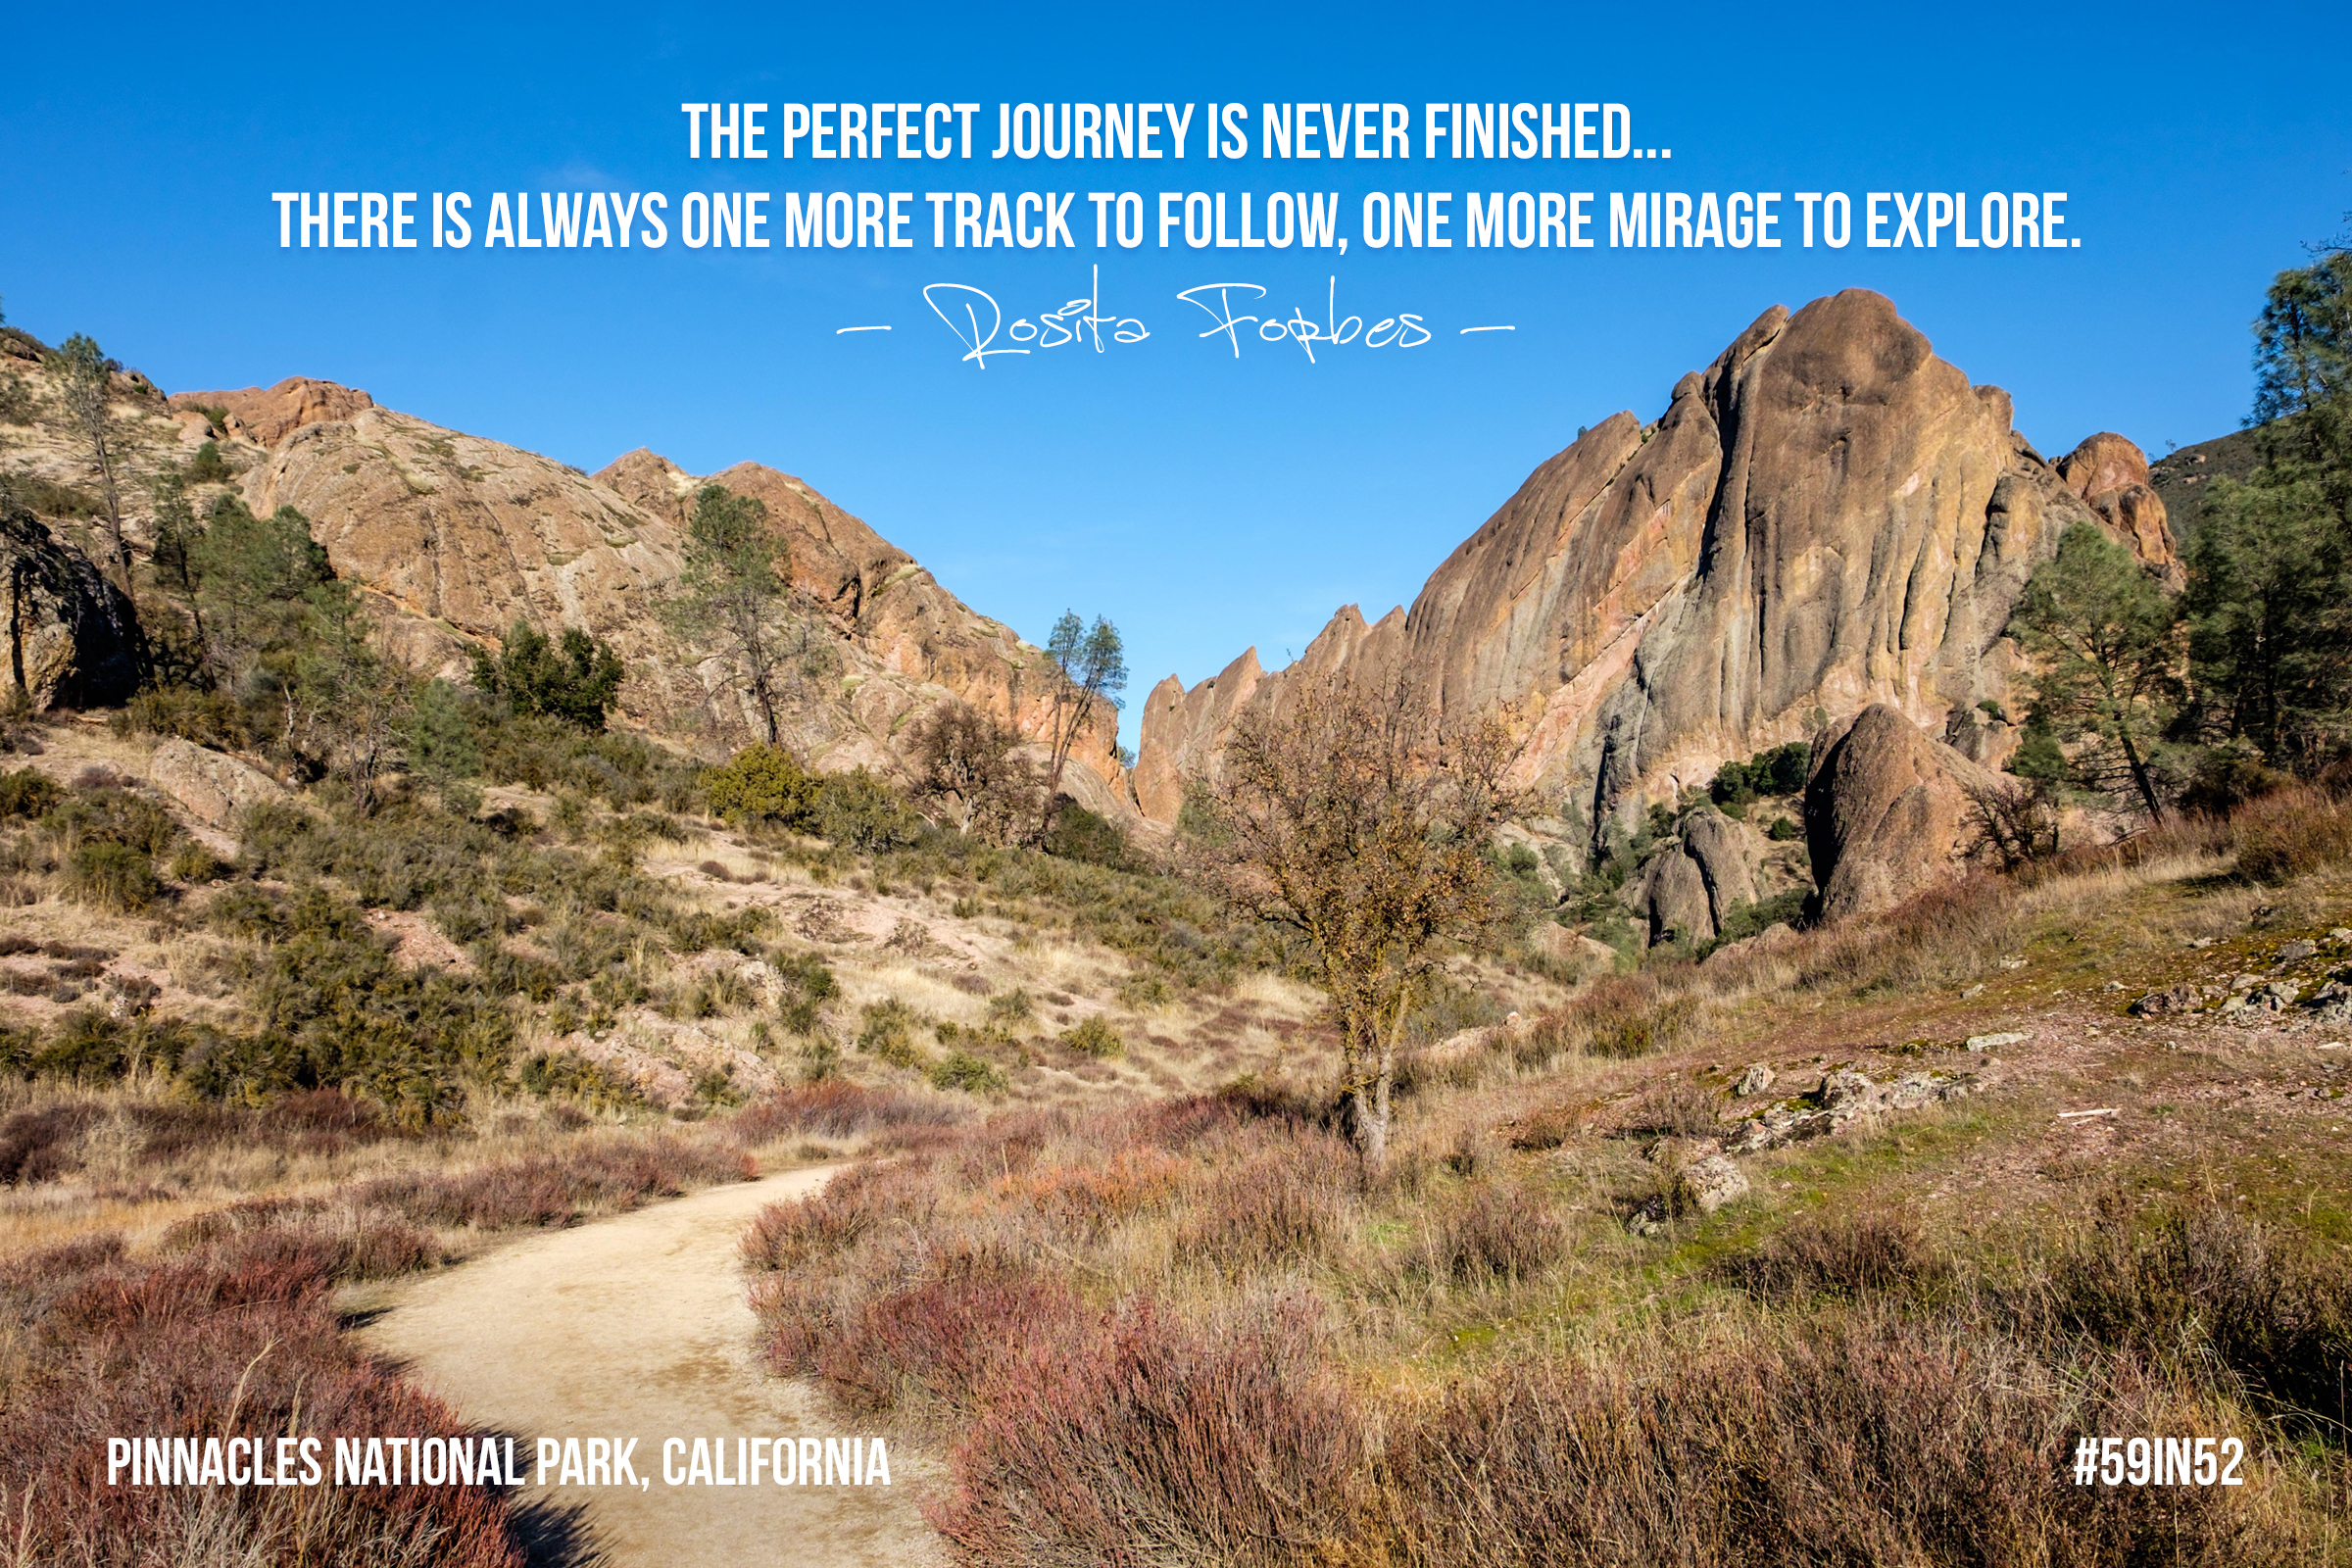 """""""The perfect journey is never finished... there is always one more track to follow, one more mirage to explore."""" - Rosita Forbes"""